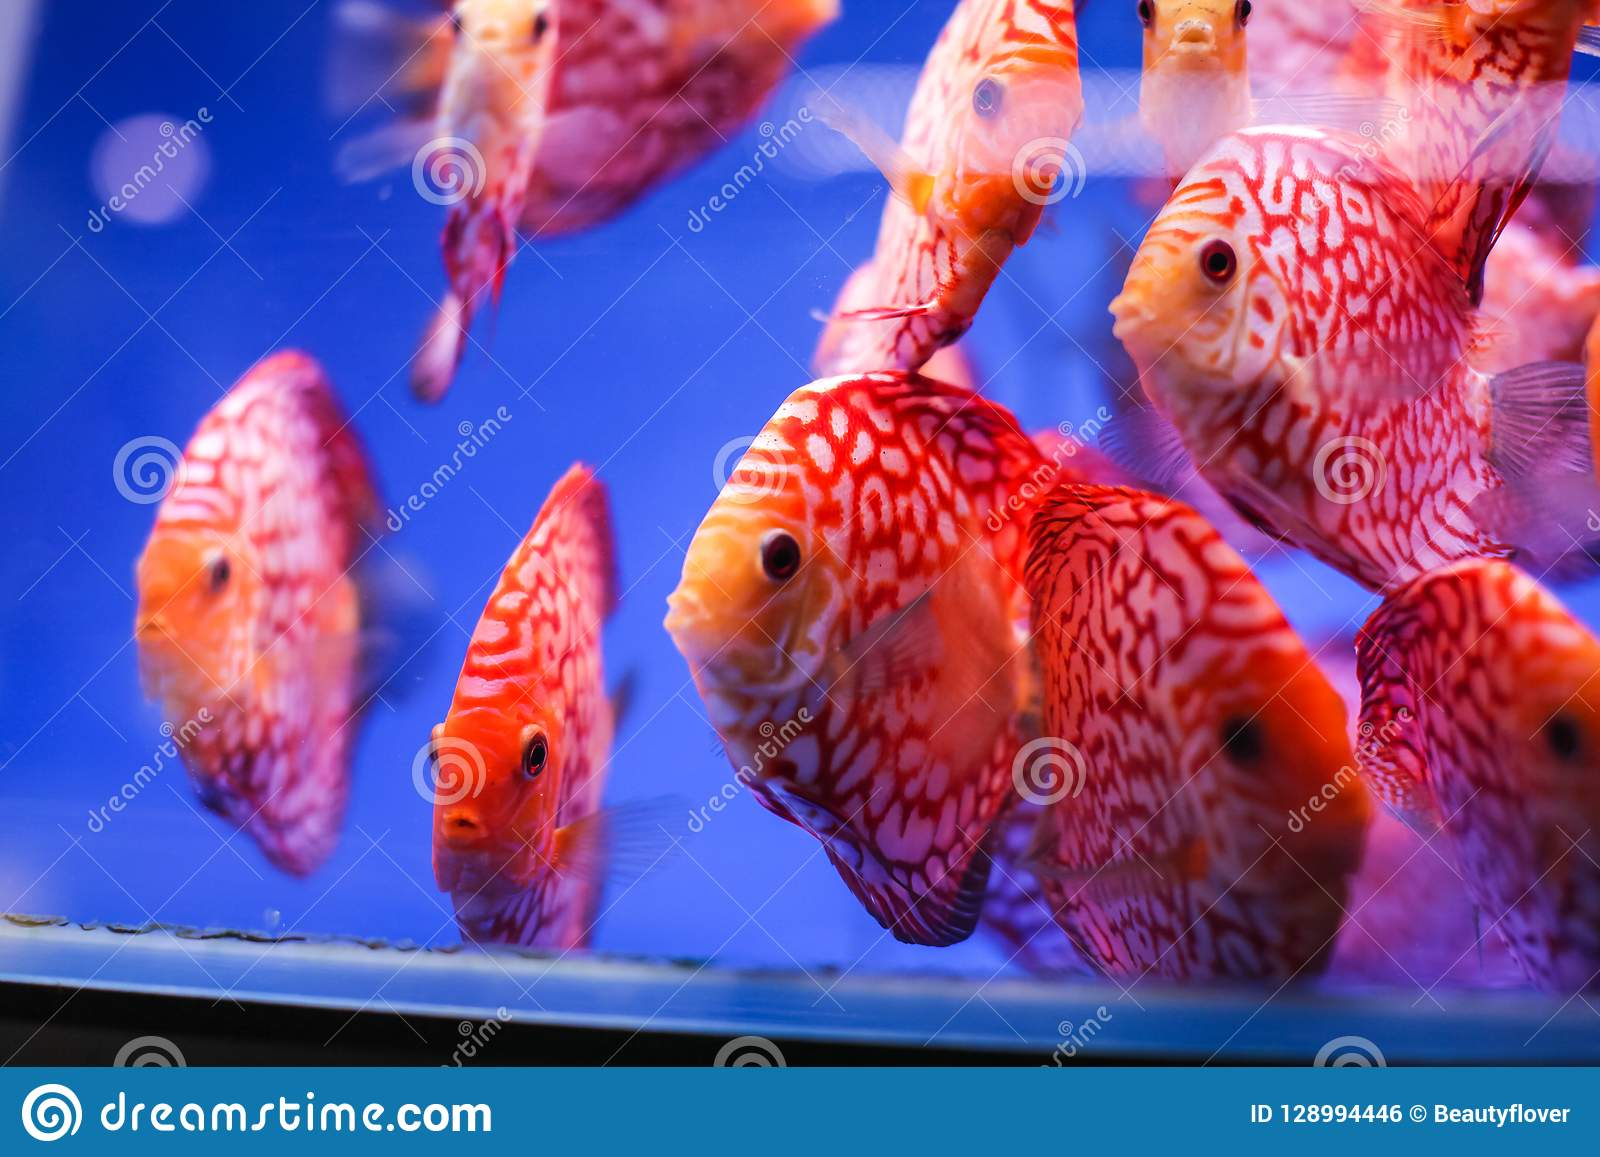 Discus Fish Symphysodon Aequifasciatus Red Melon With Red Turqoise